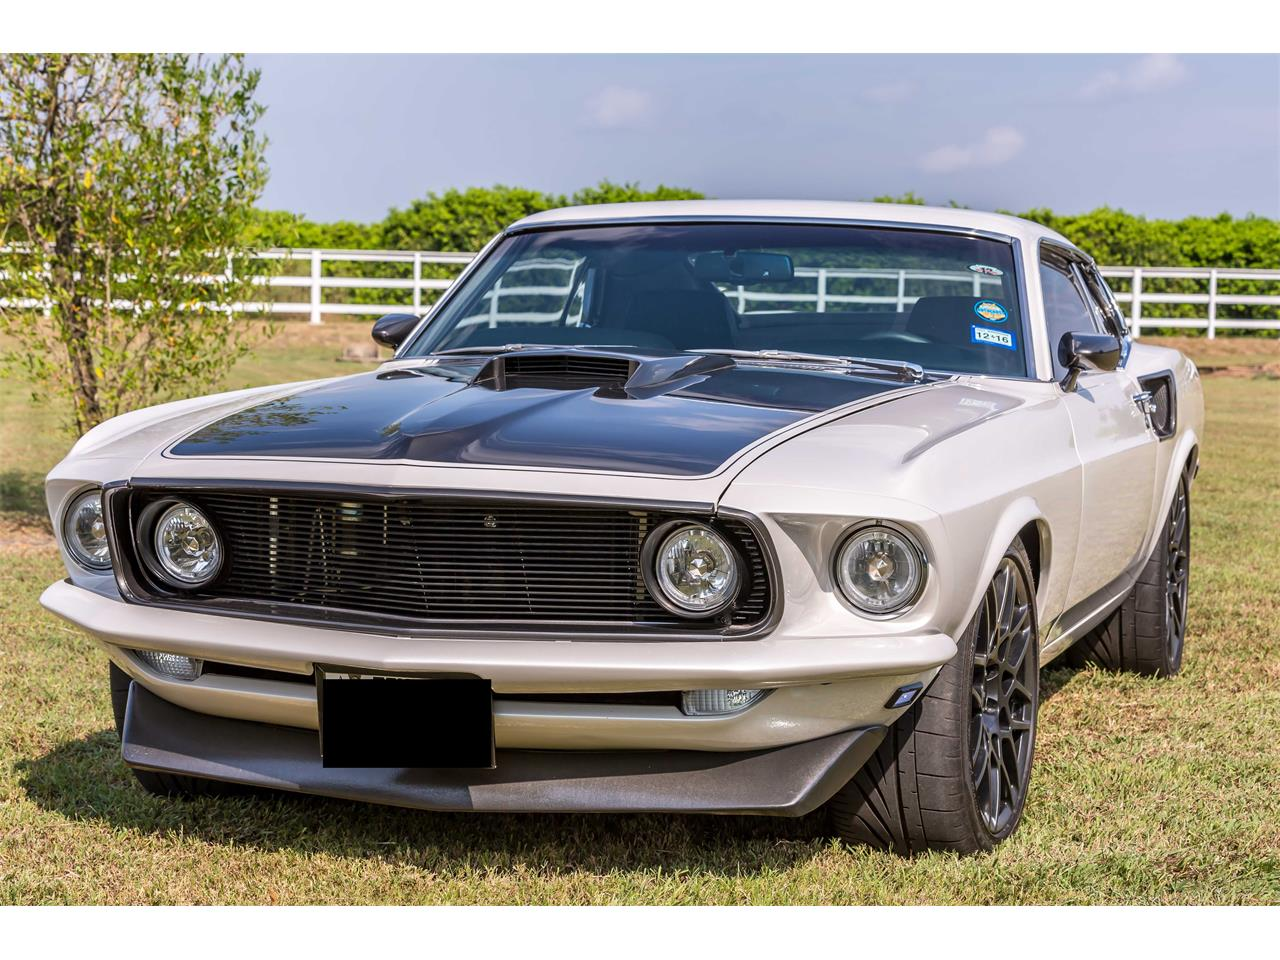 Large picture of 69 mustang odf8